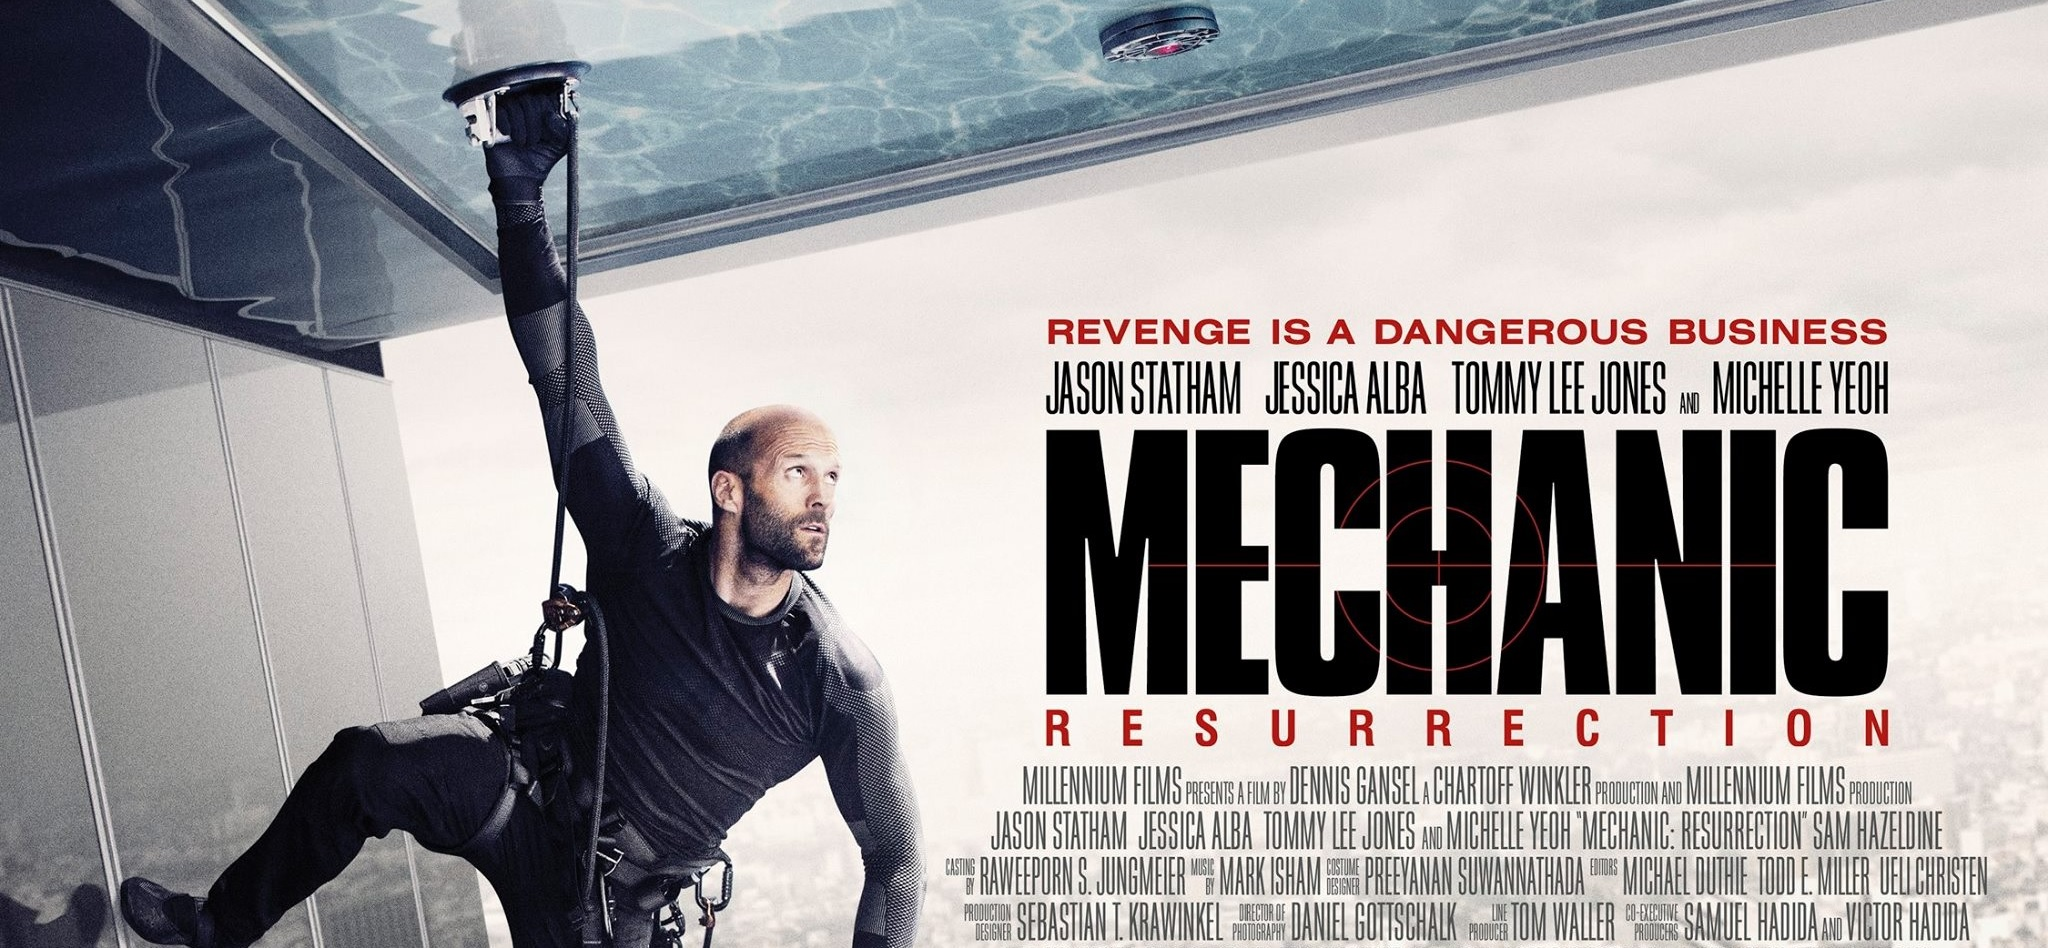 mechanic-resurrection-uk-release-date-set-for-august-1.jpg